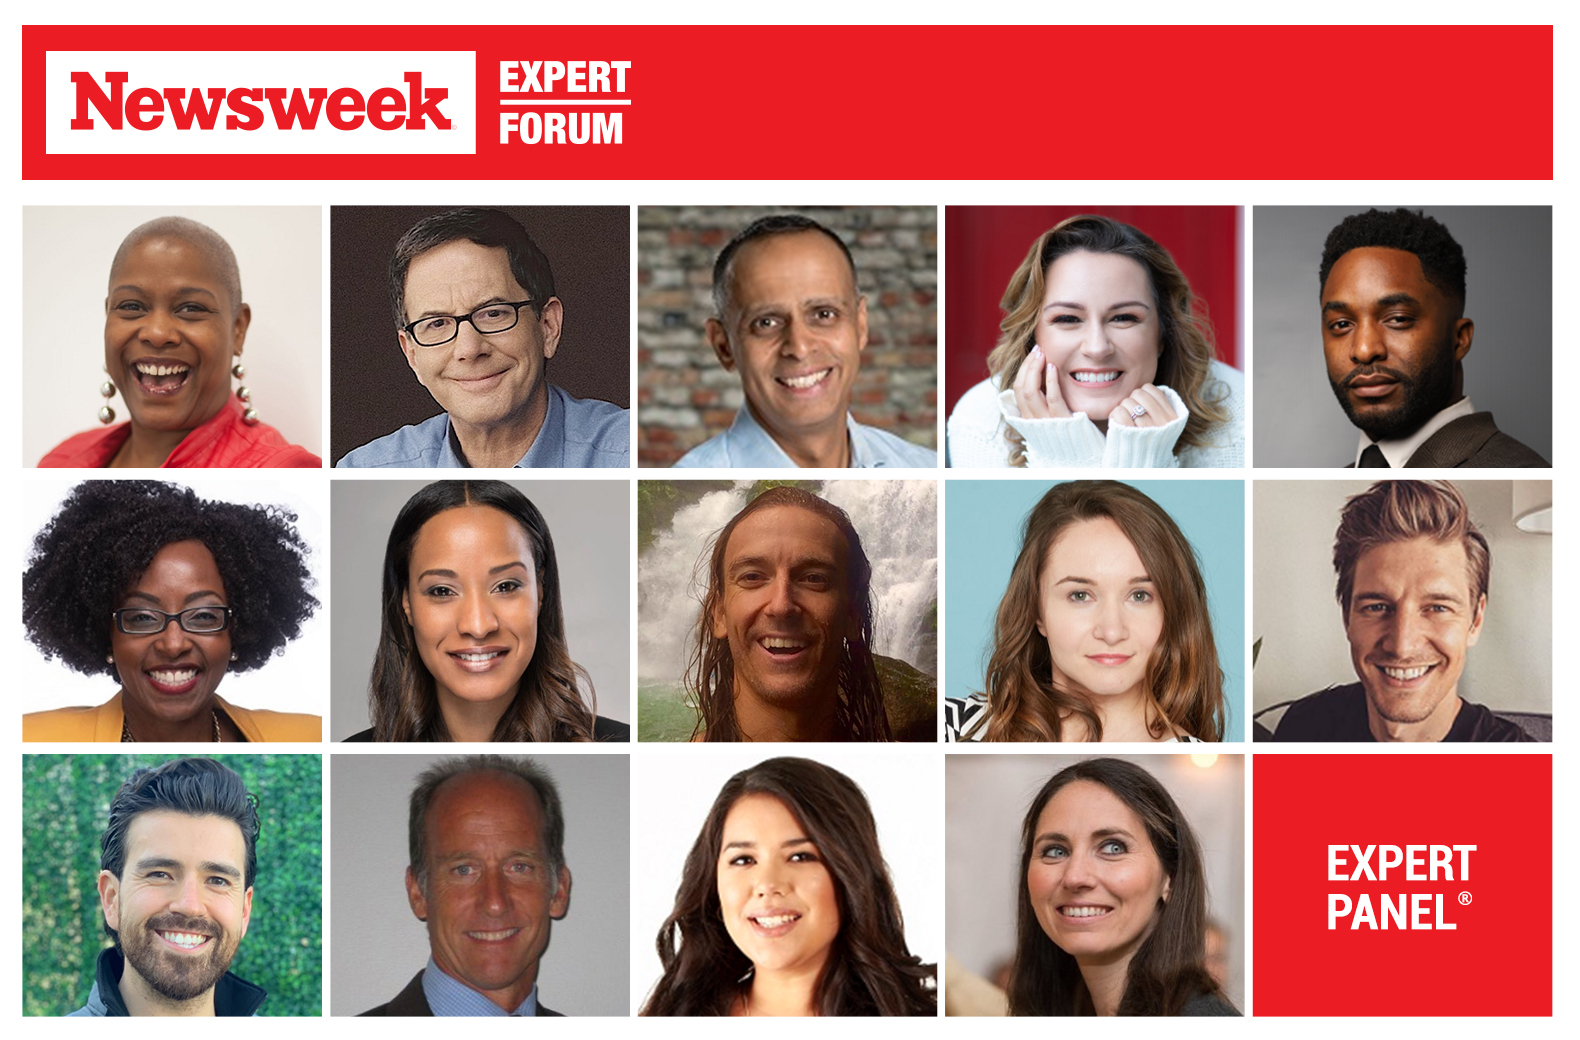 Newsweek Expert Forum members share industry insights.